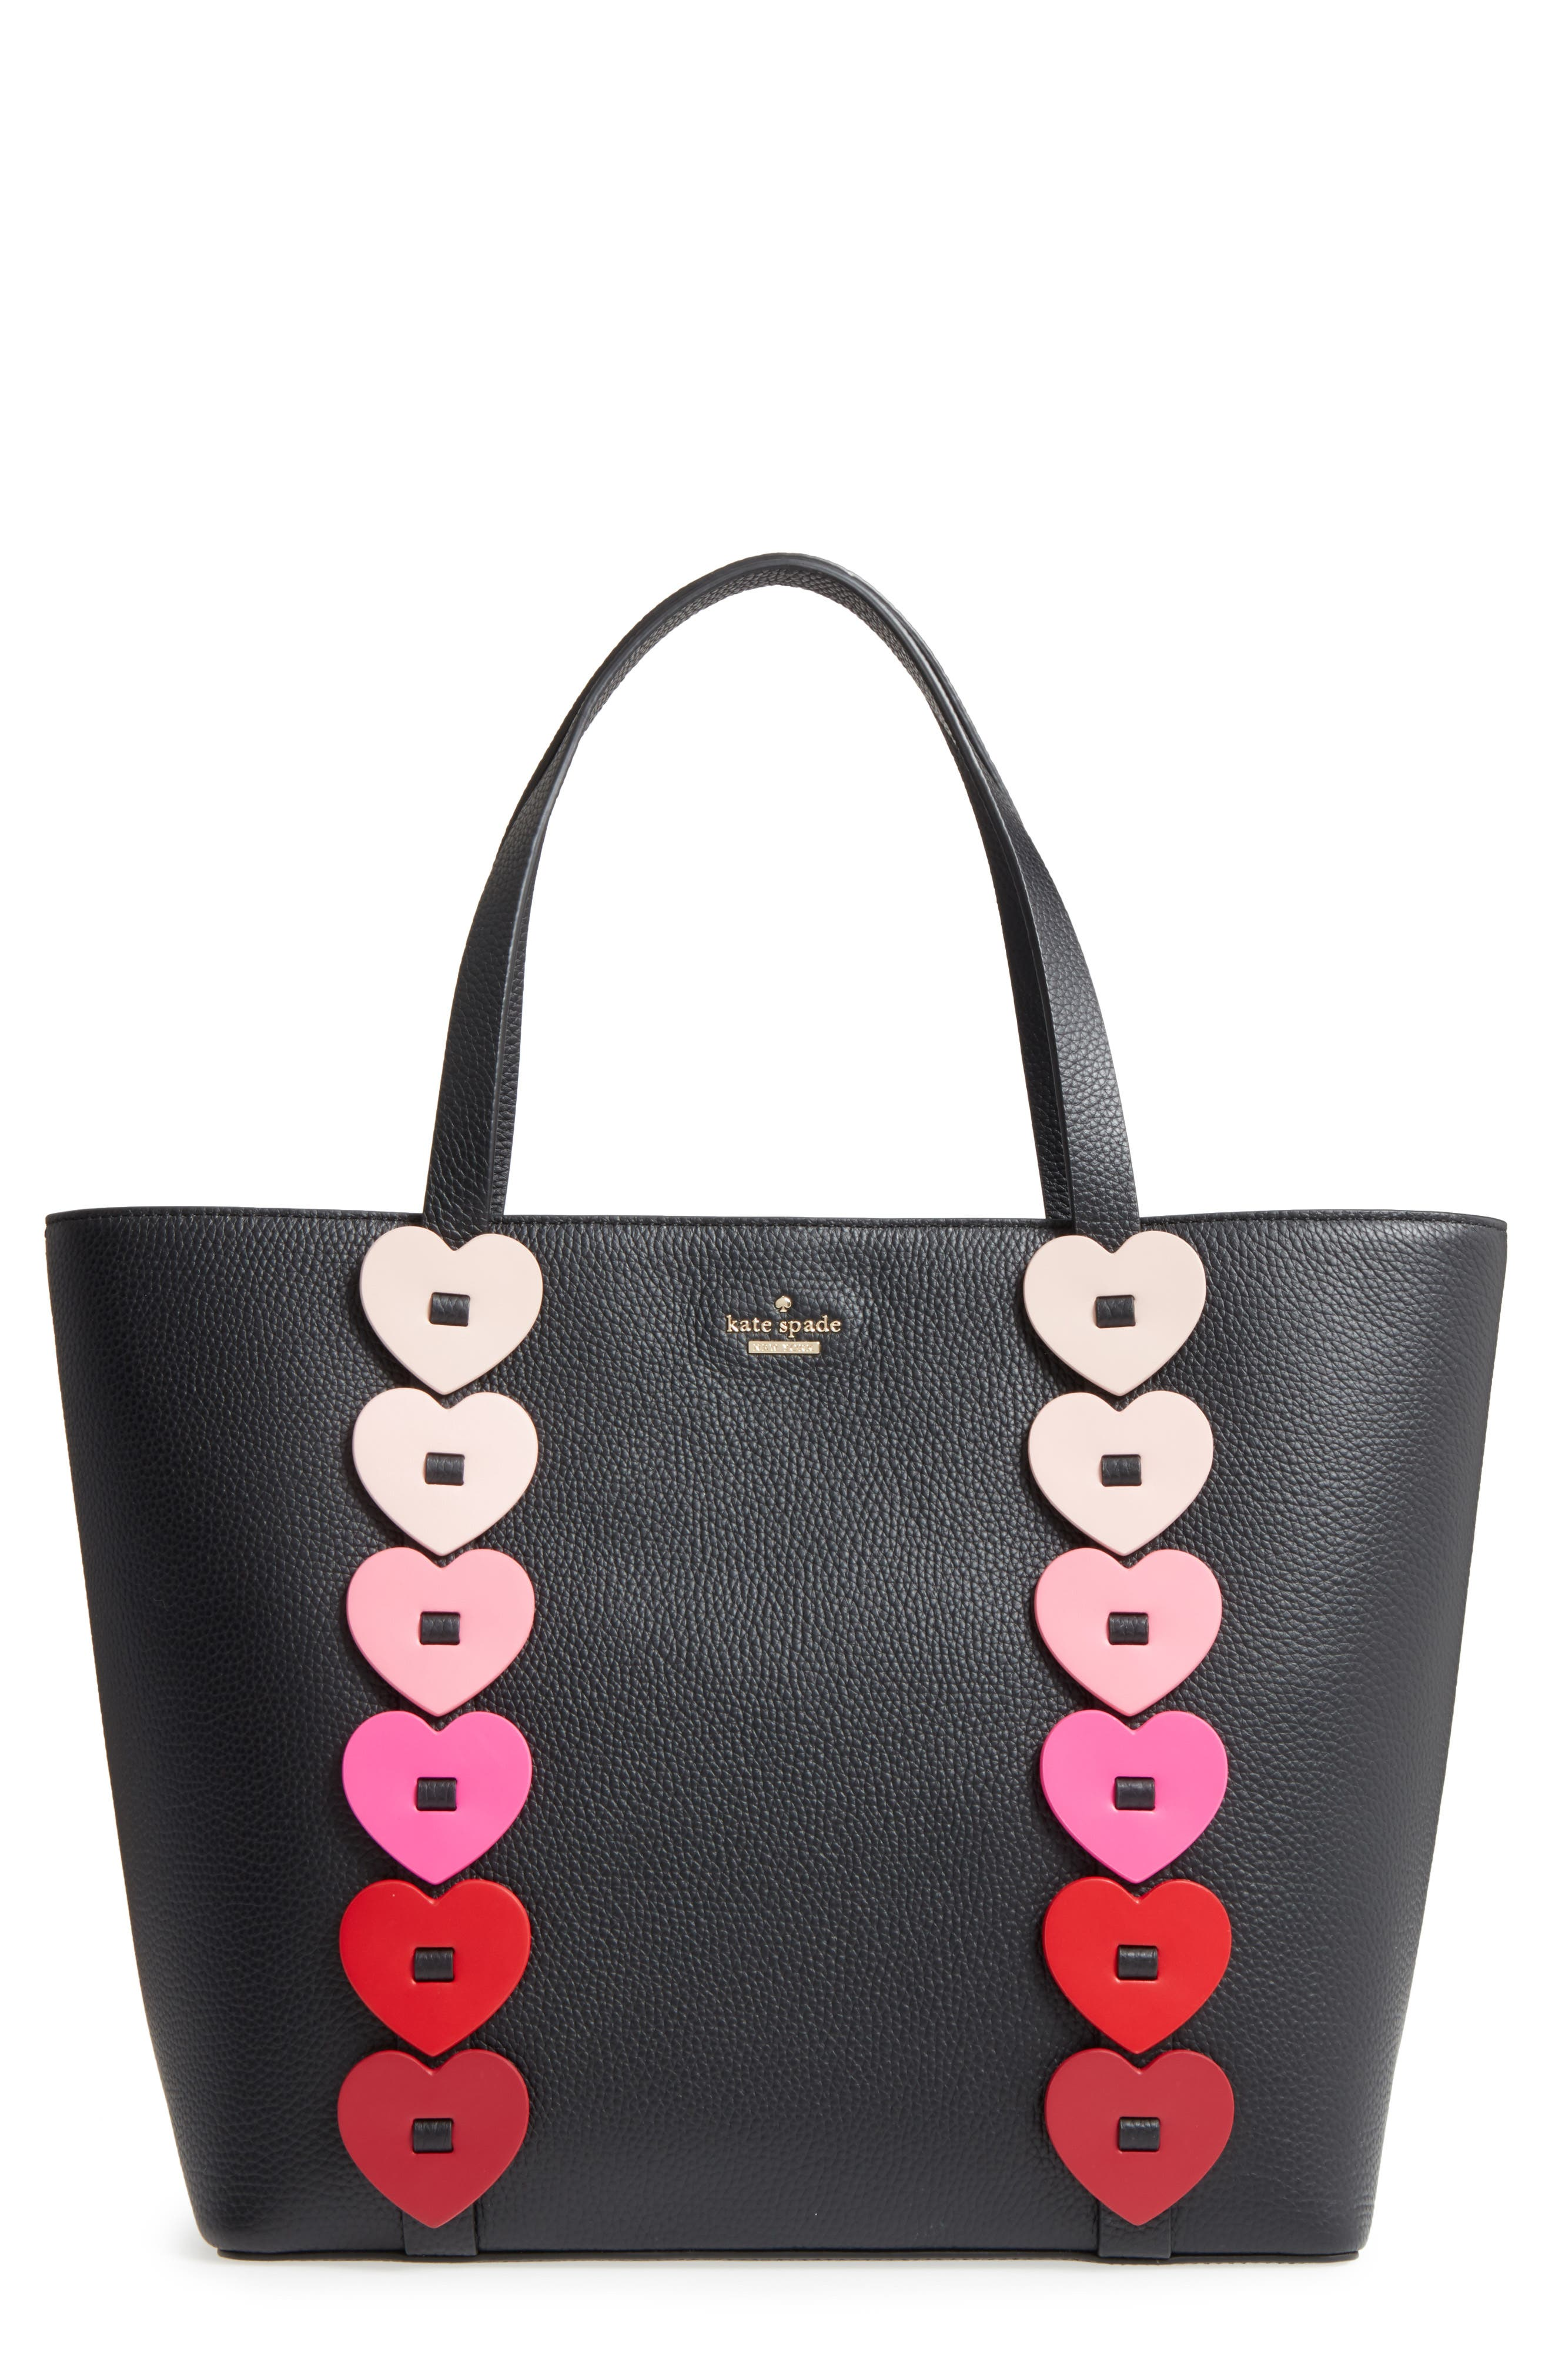 Alternate Image 1 Selected - kate spade new york yours truly - ombré heart leather tote